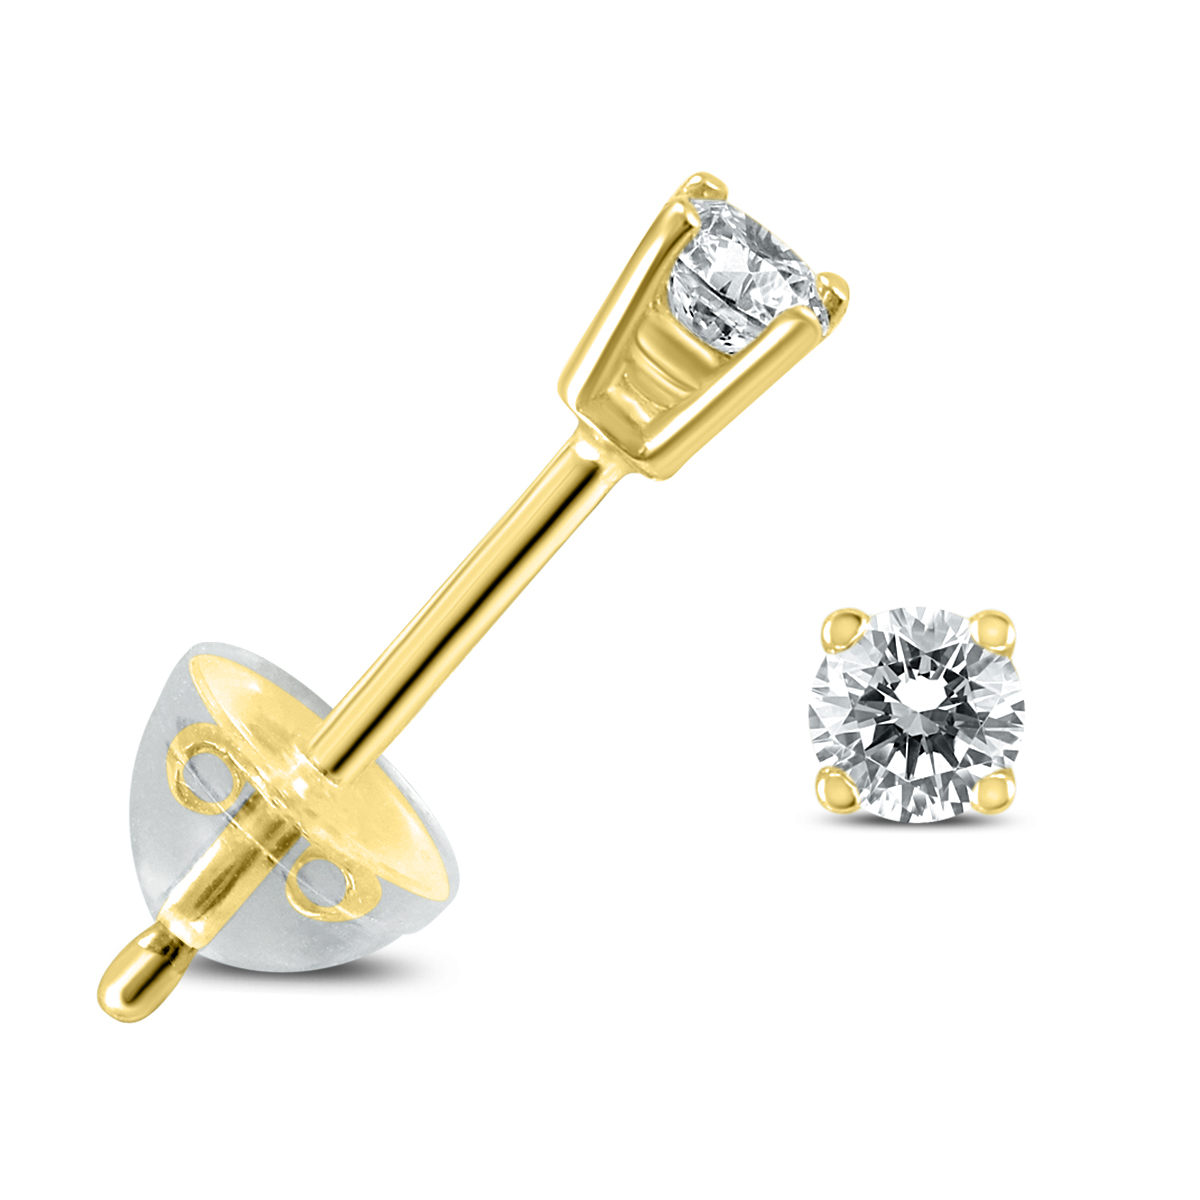 .04CTW Round Diamond Solitaire Stud Earrings In 14k Yellow Gold with Silicon Backs